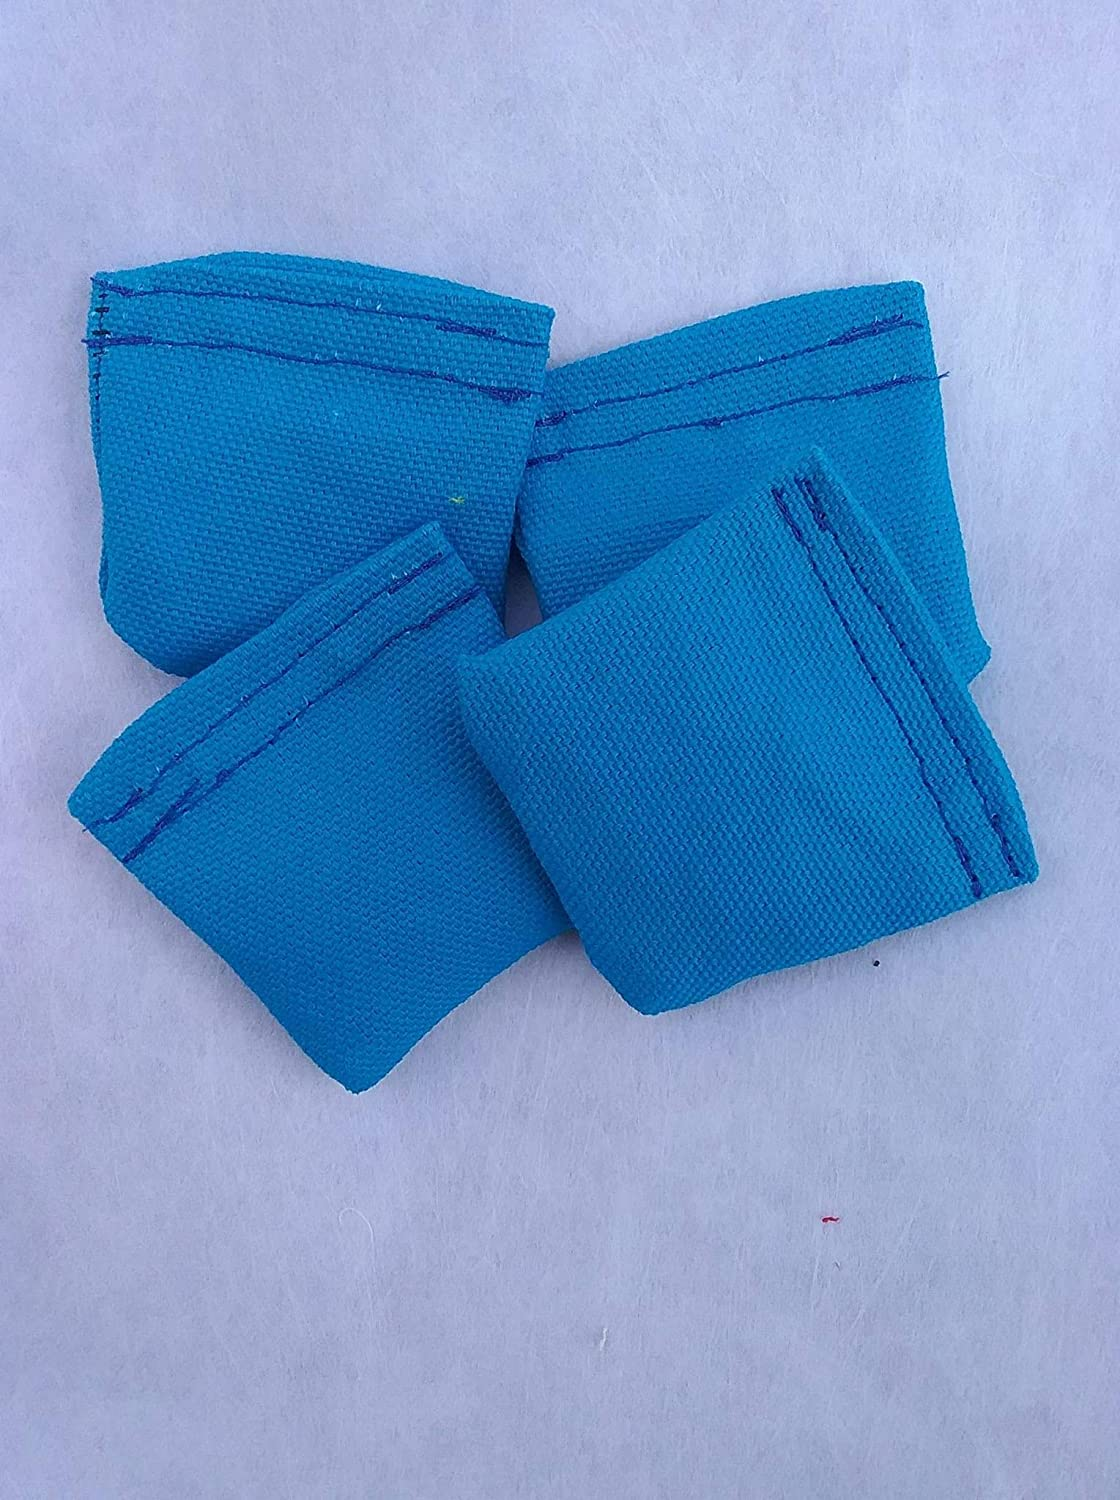 2 Bean Bag Toss Bright Blue Set of 4 Mini Cornhole Bags